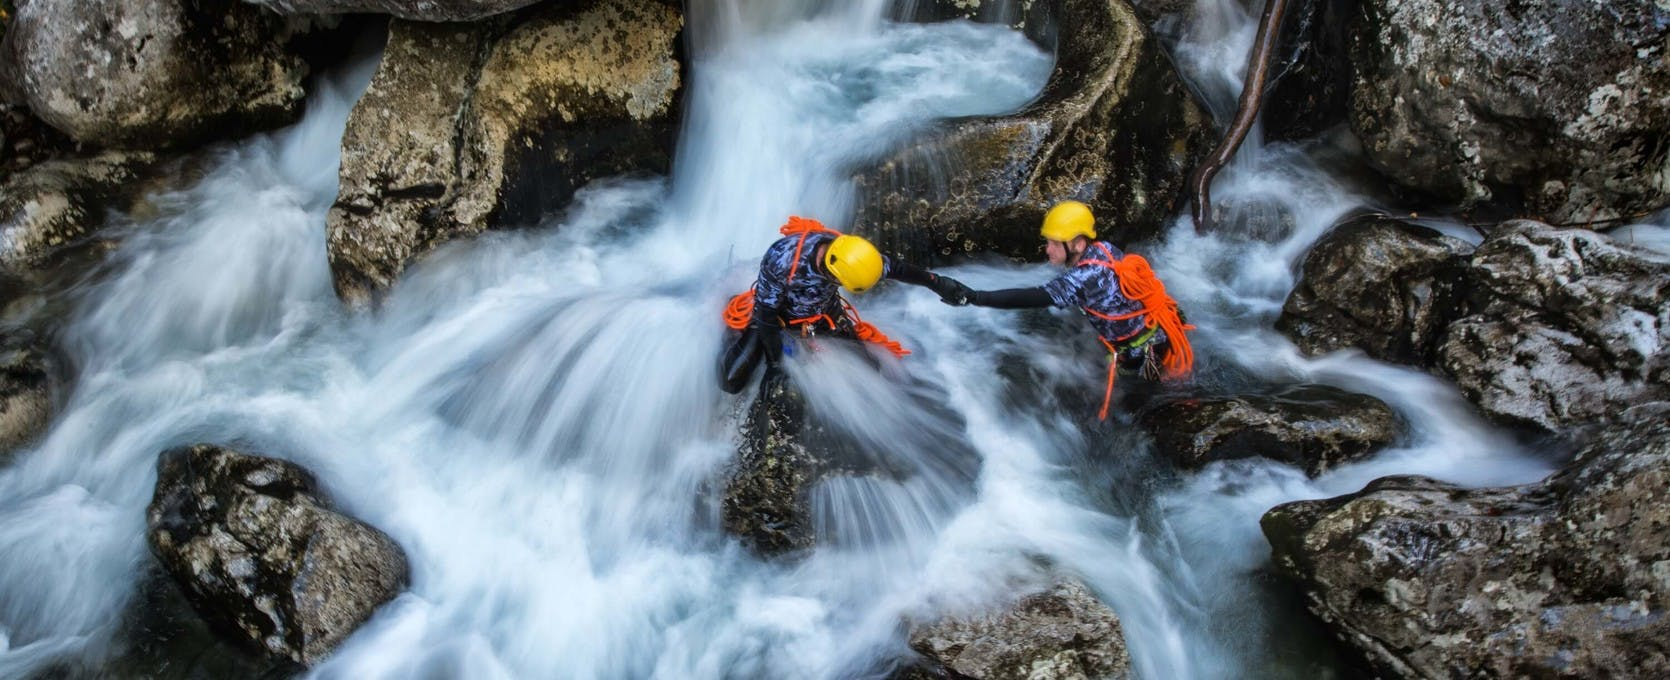 Working together to climb over slippery stream bed